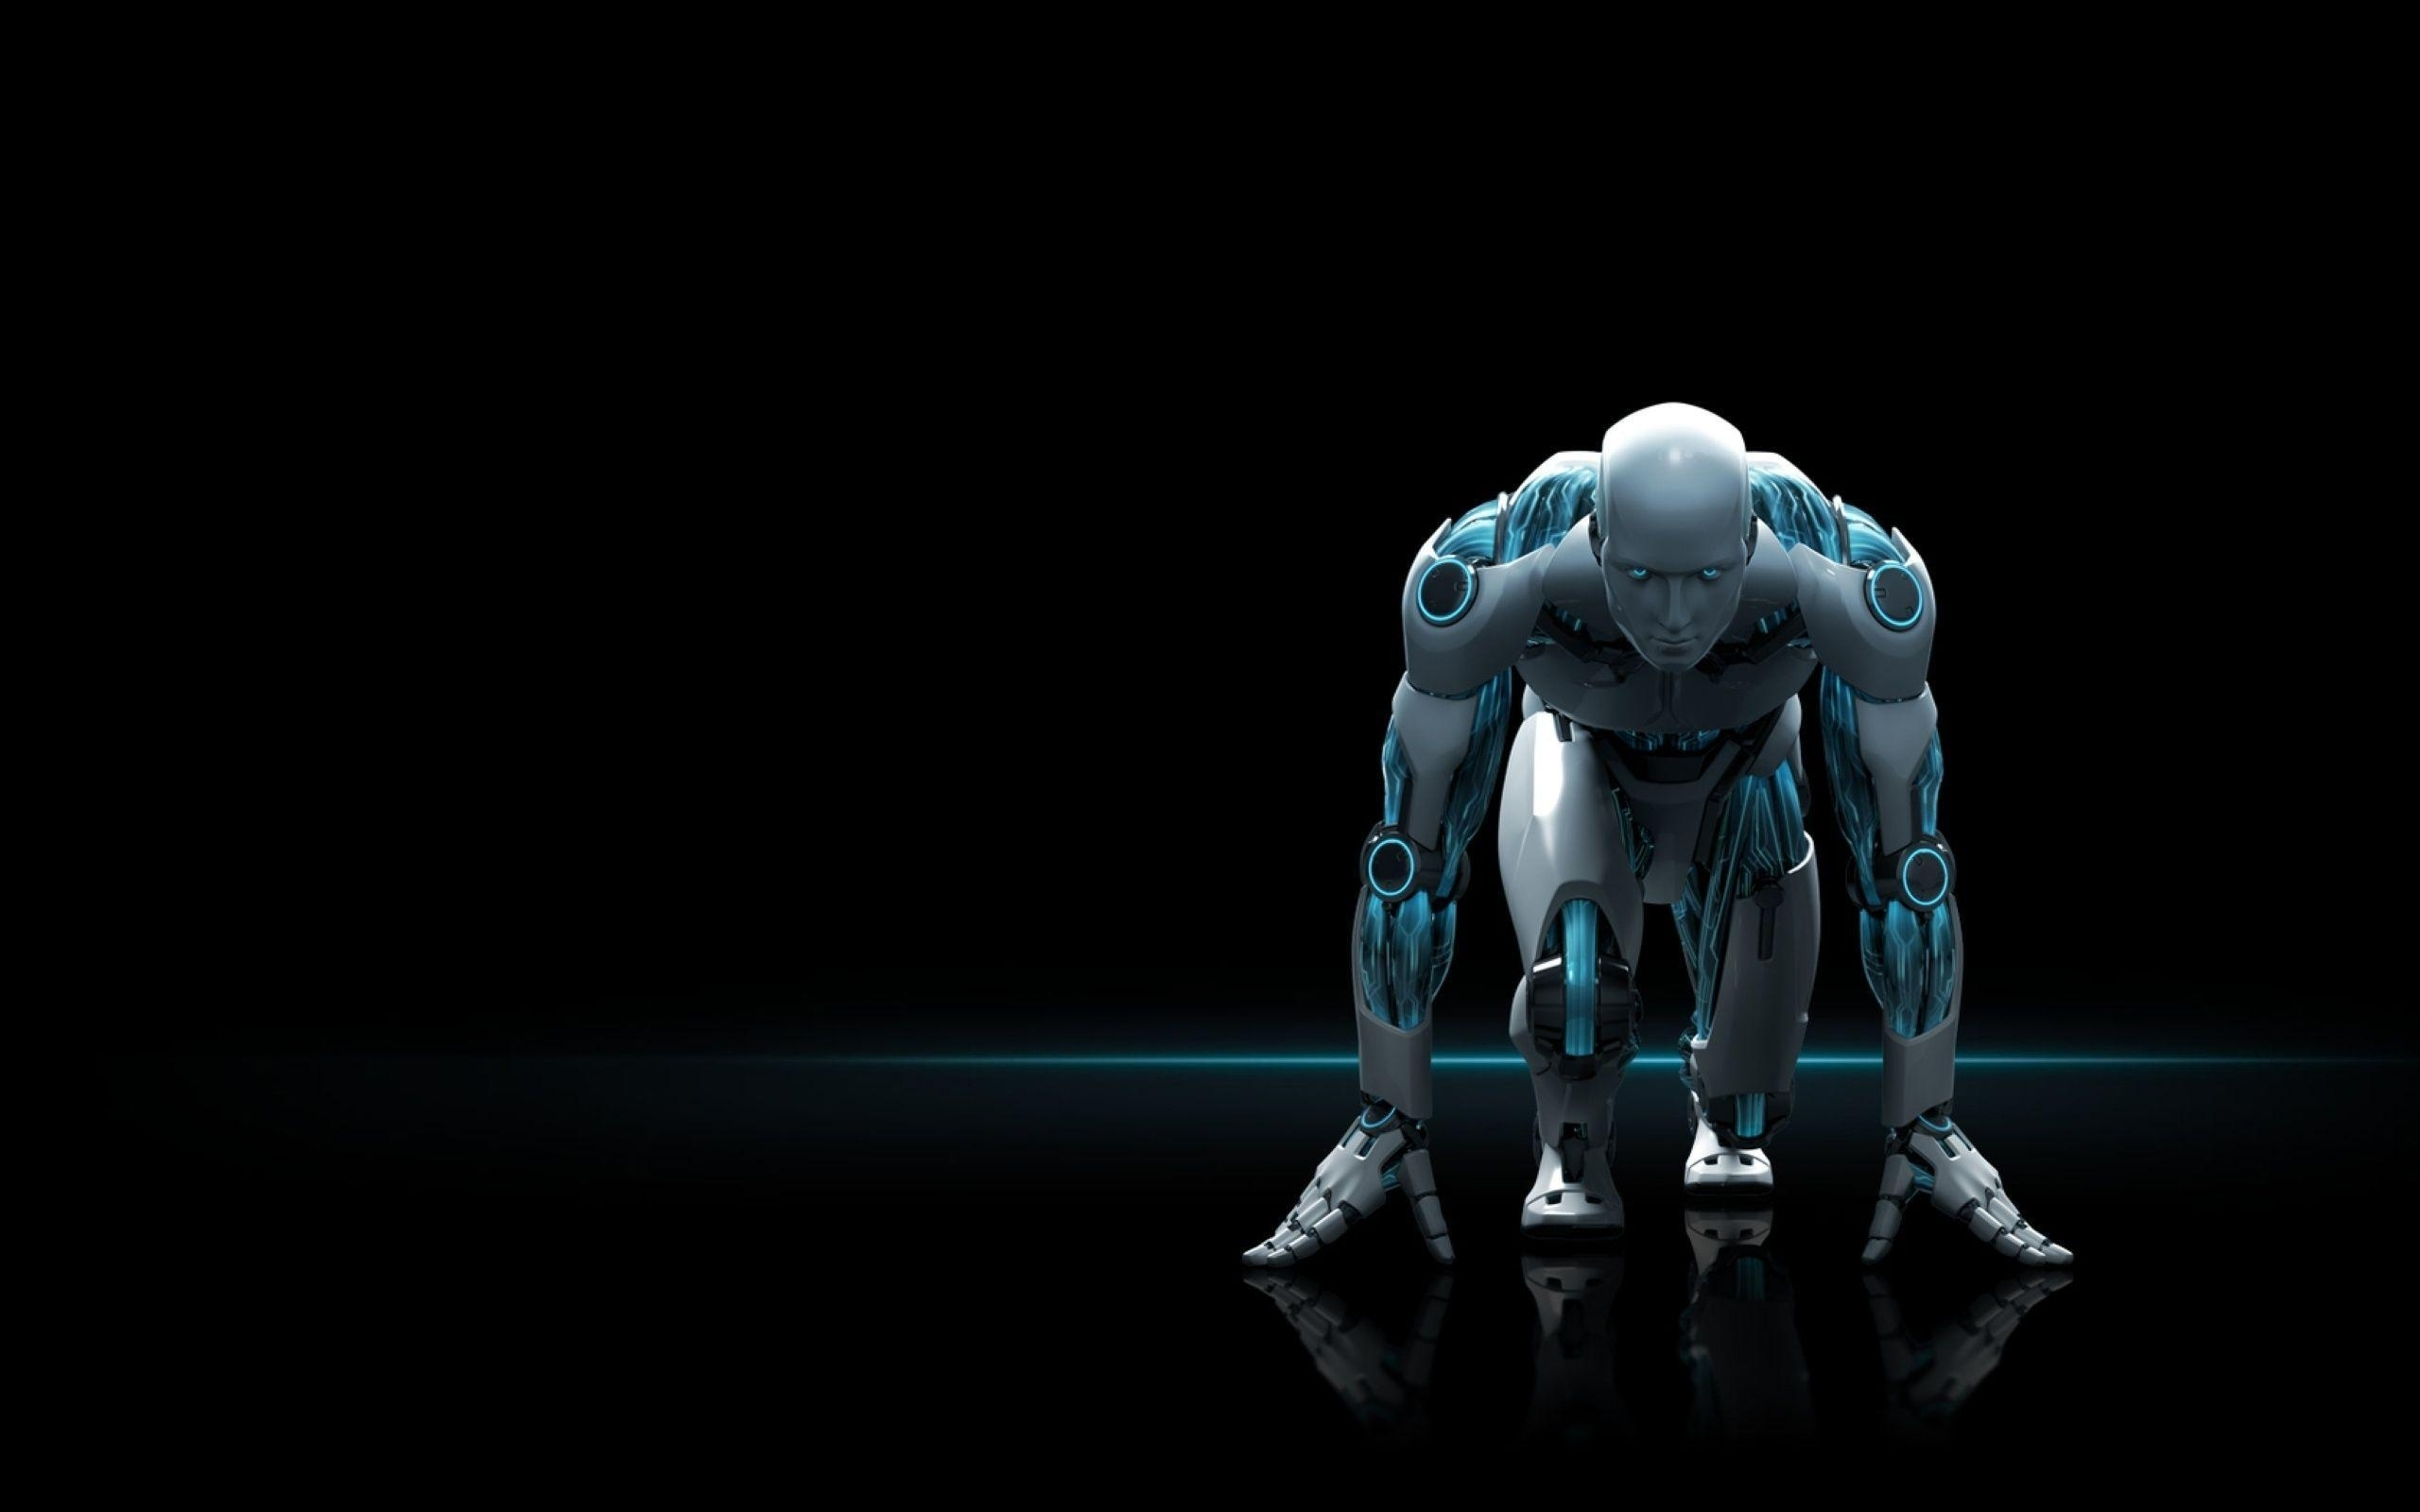 robot wallpapers - wallpaper cave